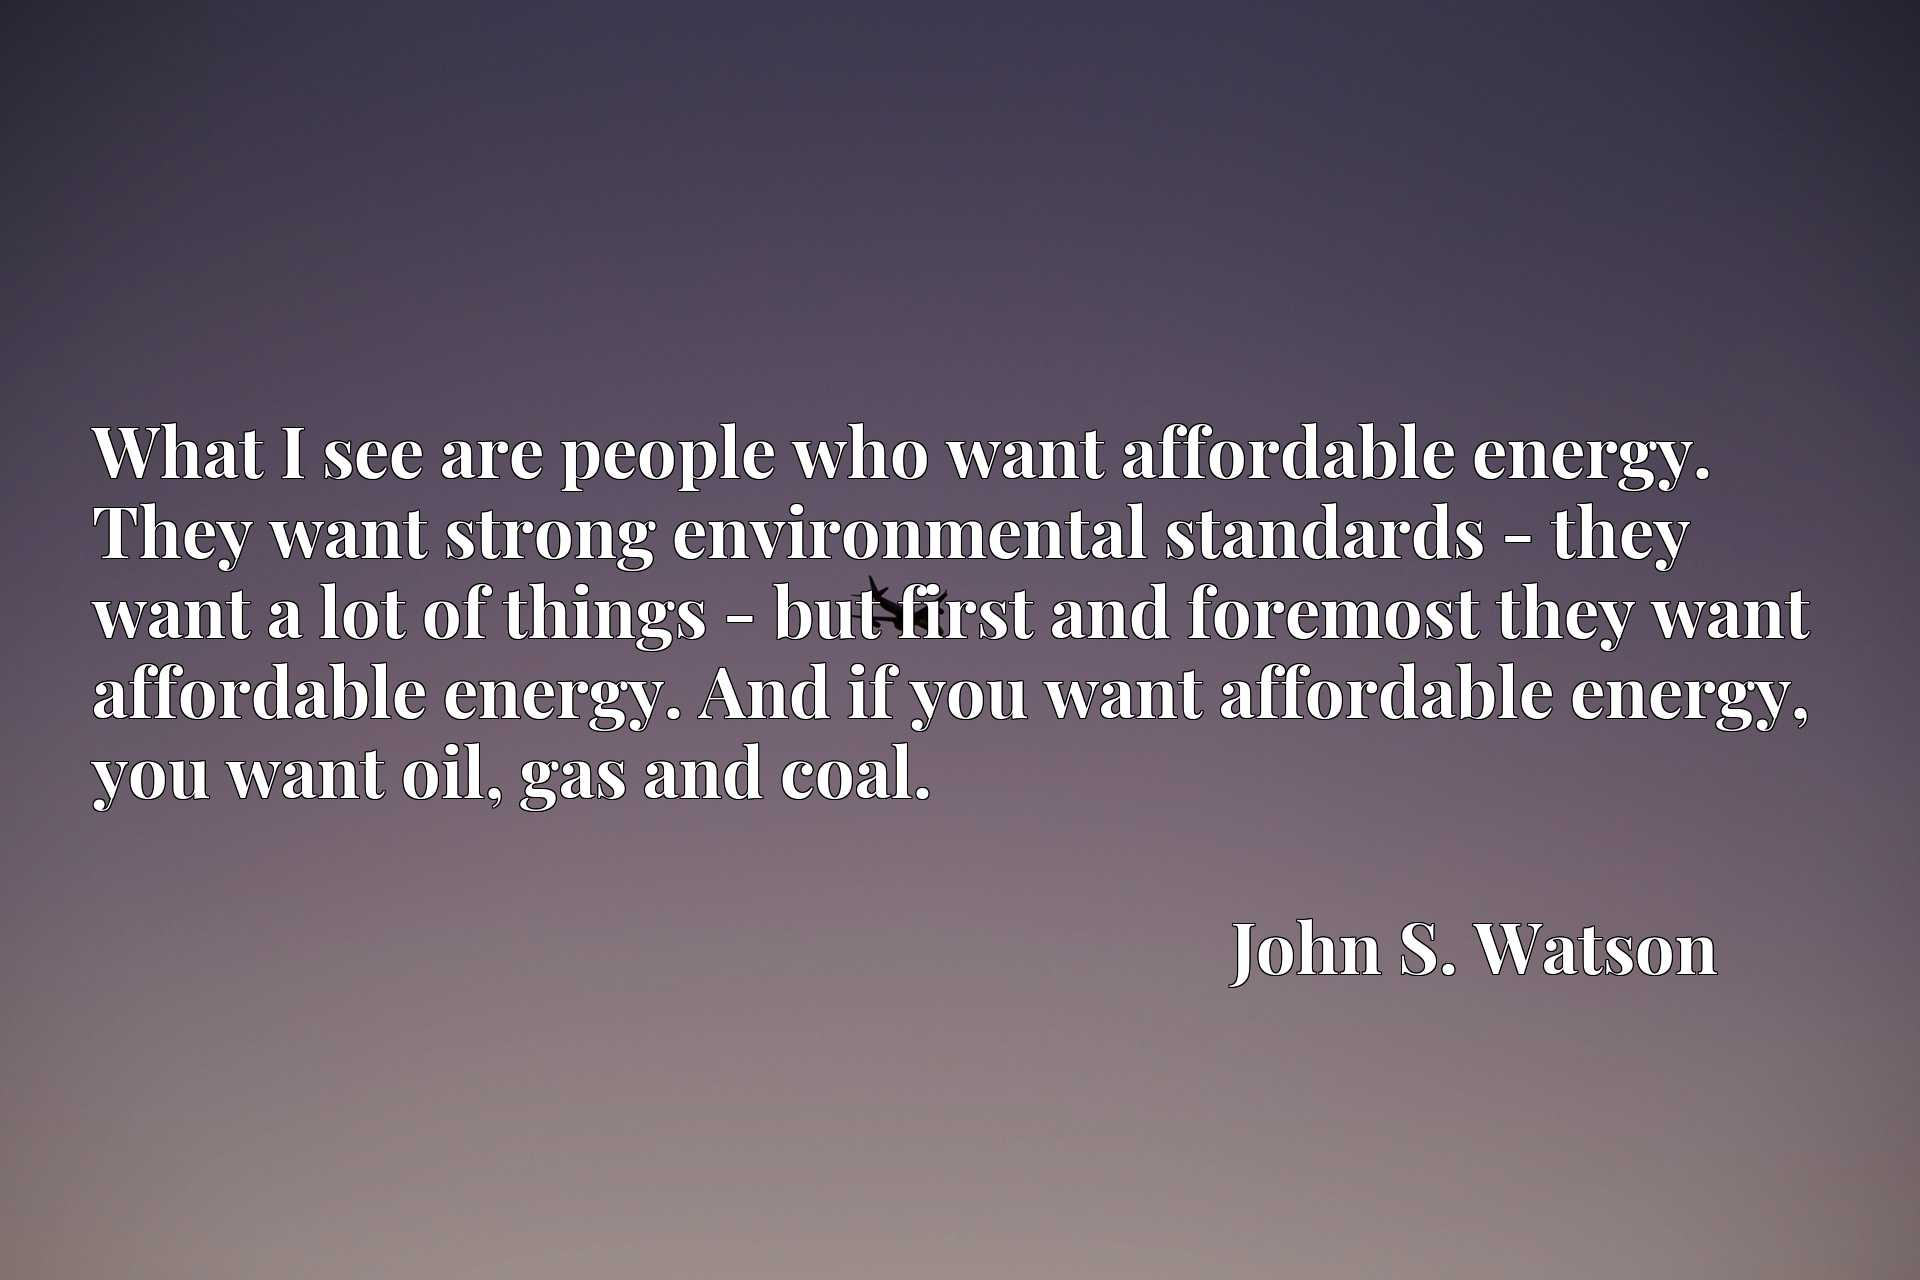 What I see are people who want affordable energy. They want strong environmental standards - they want a lot of things - but first and foremost they want affordable energy. And if you want affordable energy, you want oil, gas and coal.